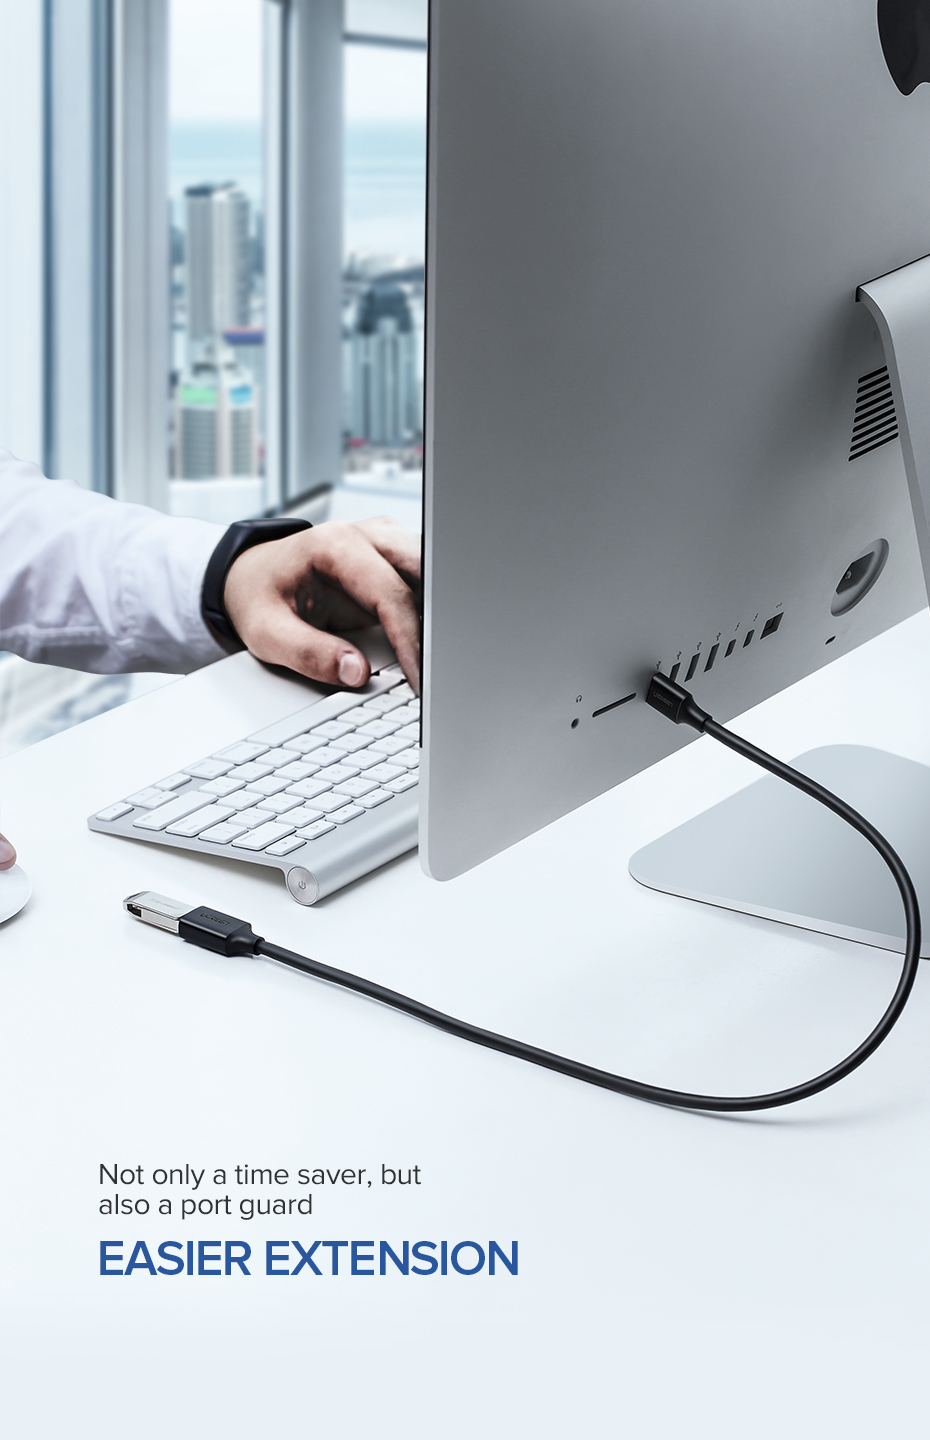 USB Extension Cable for Smart TV and PC